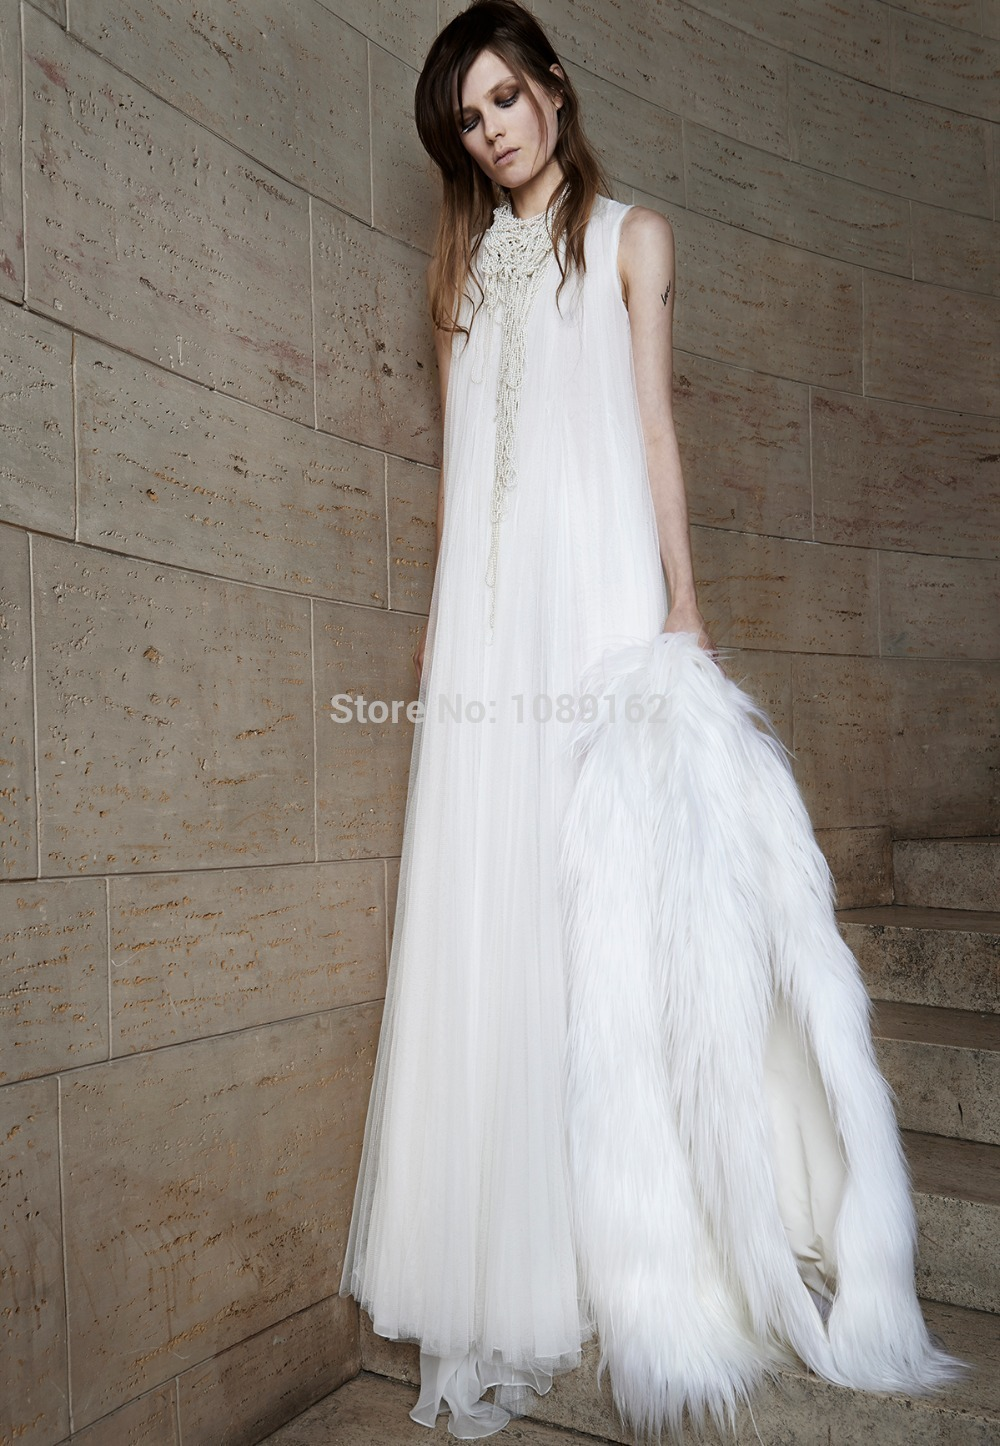 2015 New Romantic Sheath Sleeveless Tank Scoop Floor Length Sweep Train Appliques Zipper Pleat Chiffon Wedding Dresses - Ma wedding celebration factory store